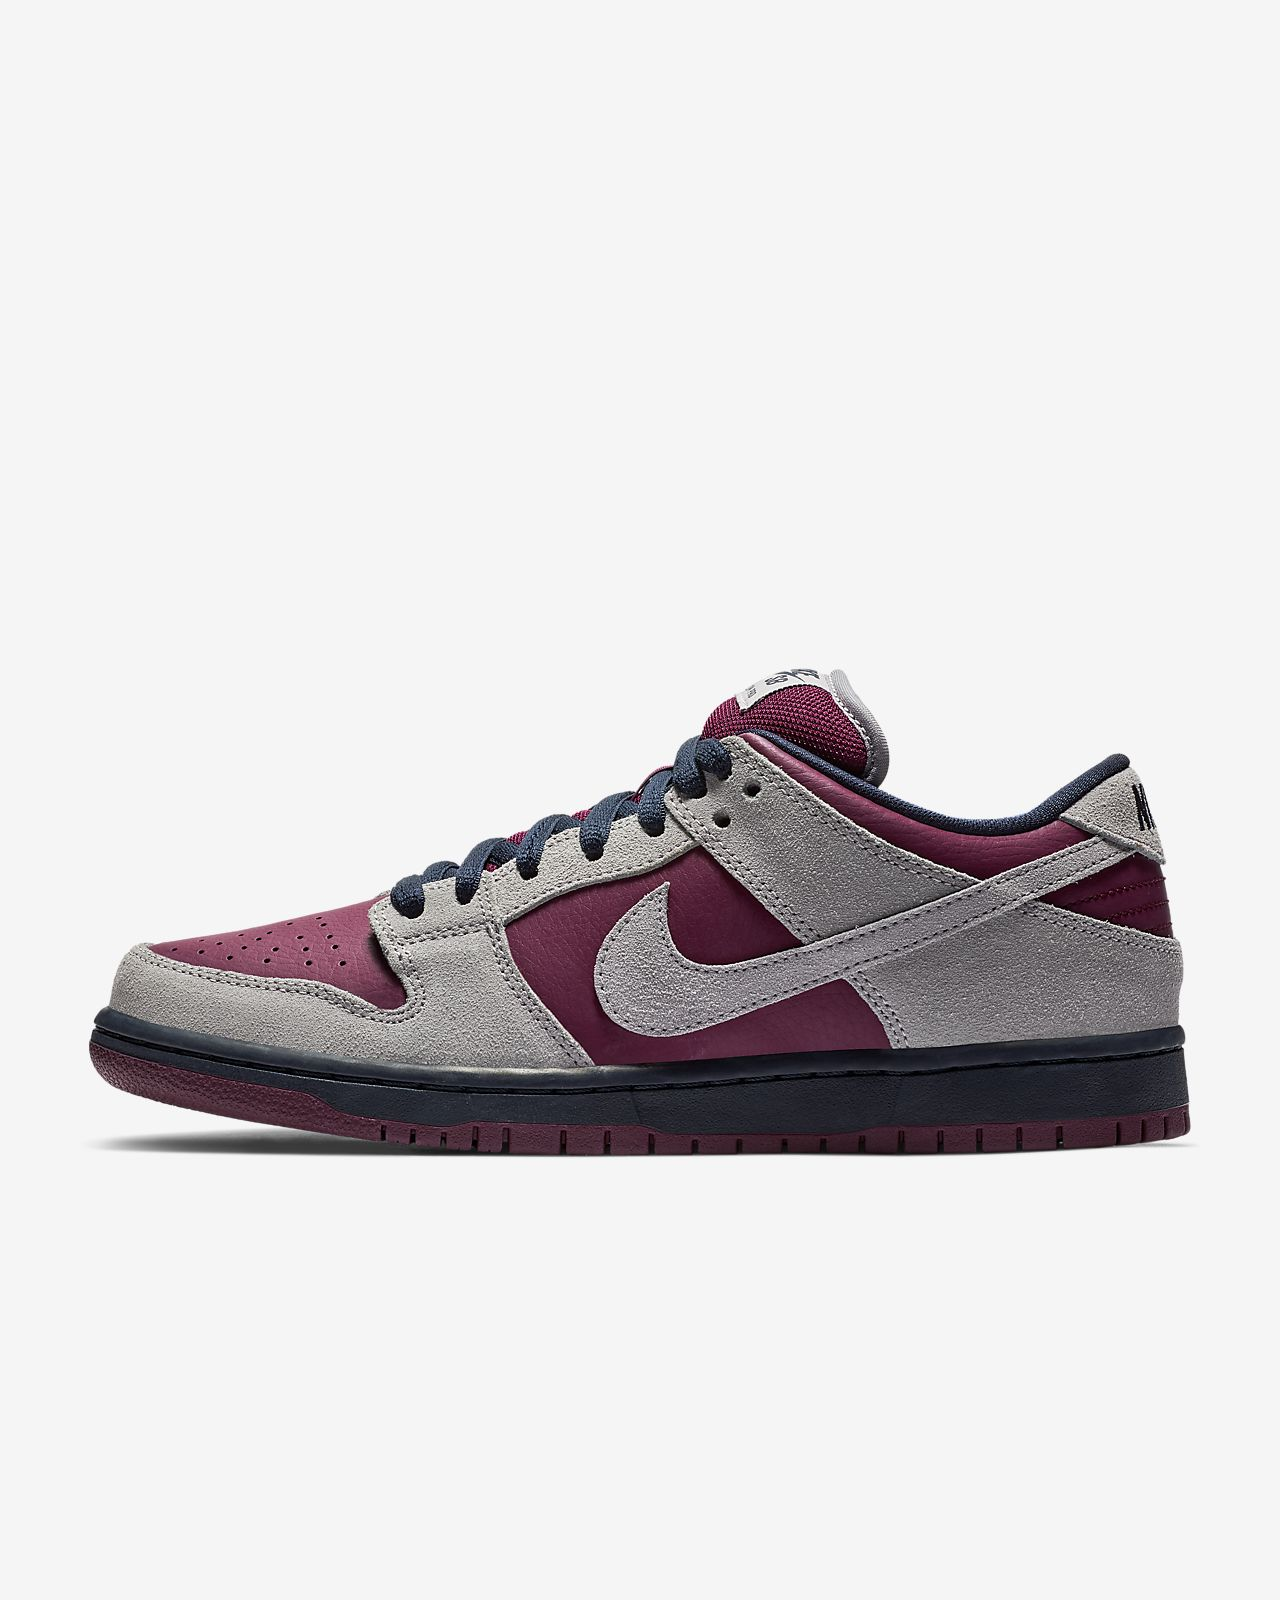 timeless design a90a4 38761 Skate Shoe. Nike SB Dunk Low Pro